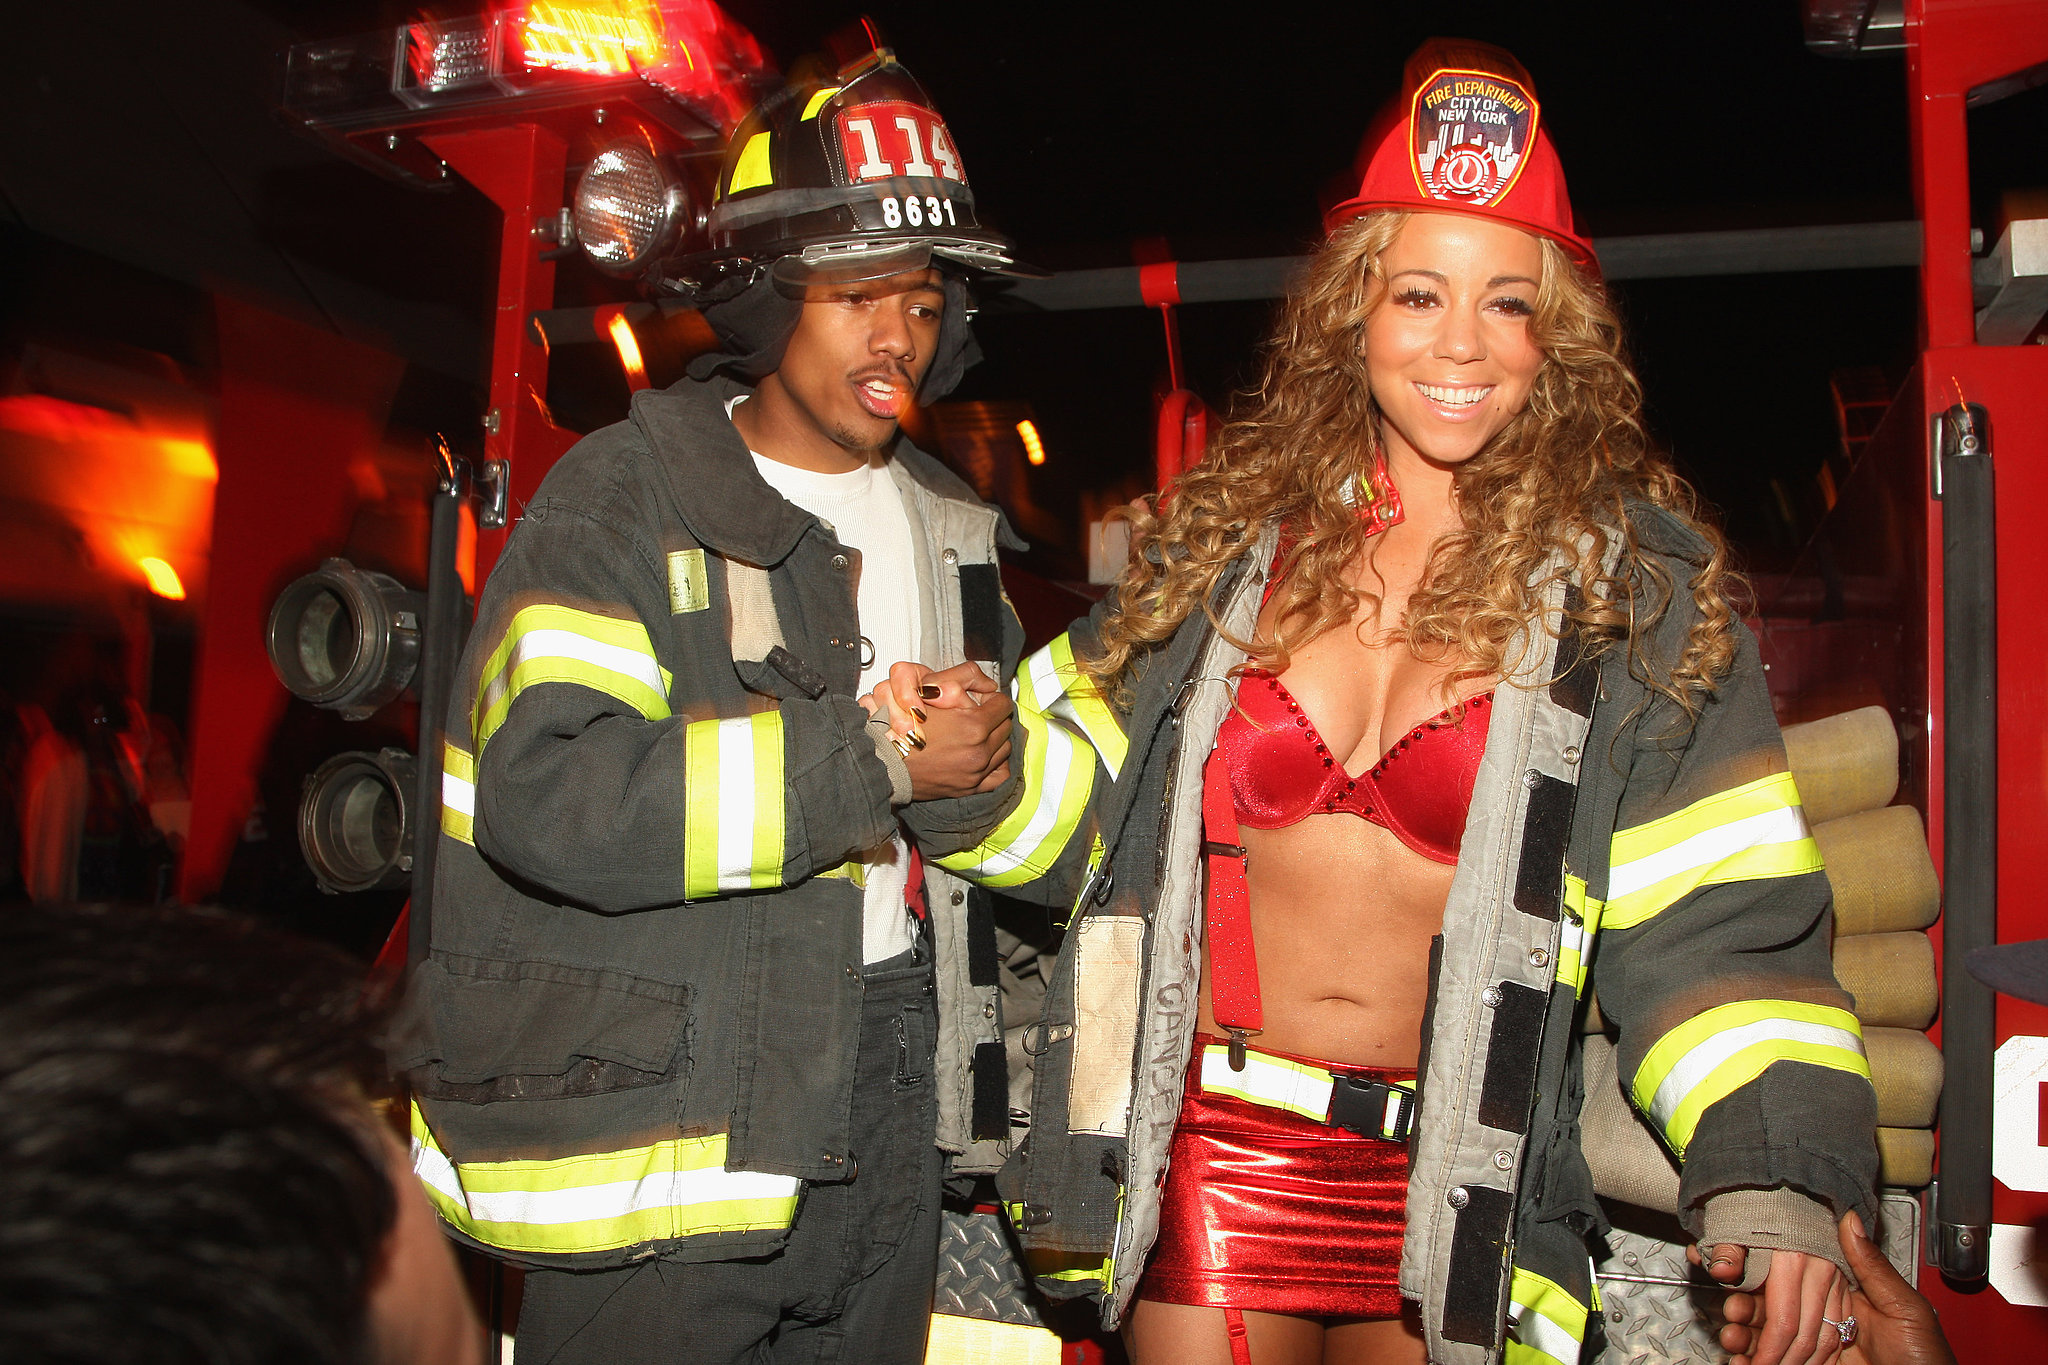 Nick Cannon and Mariah Carey put out the fire in October 2008 at thei